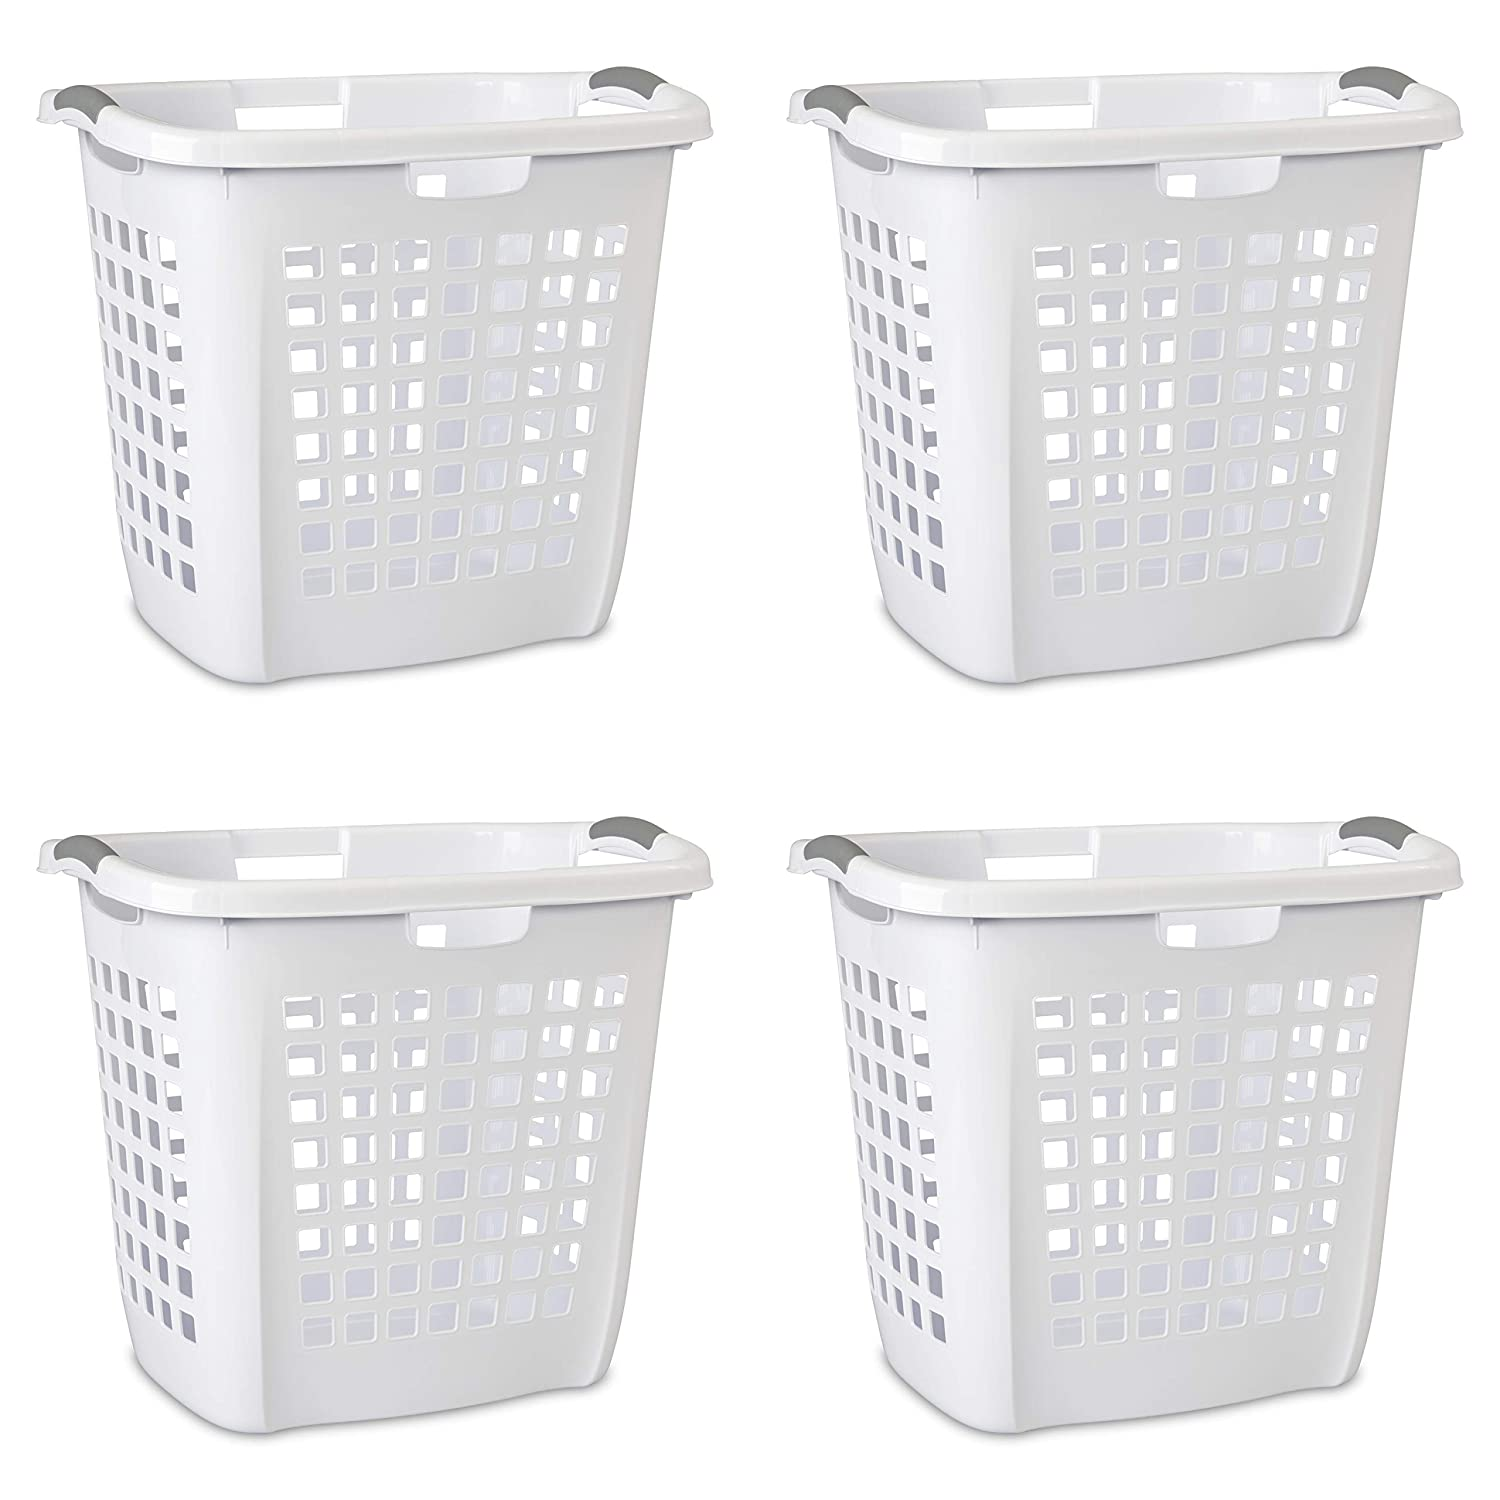 Sterilite 12258004 Ultra Easy Carry Hamper, White Hamper w/ Titanium Inserts, 4-Pack